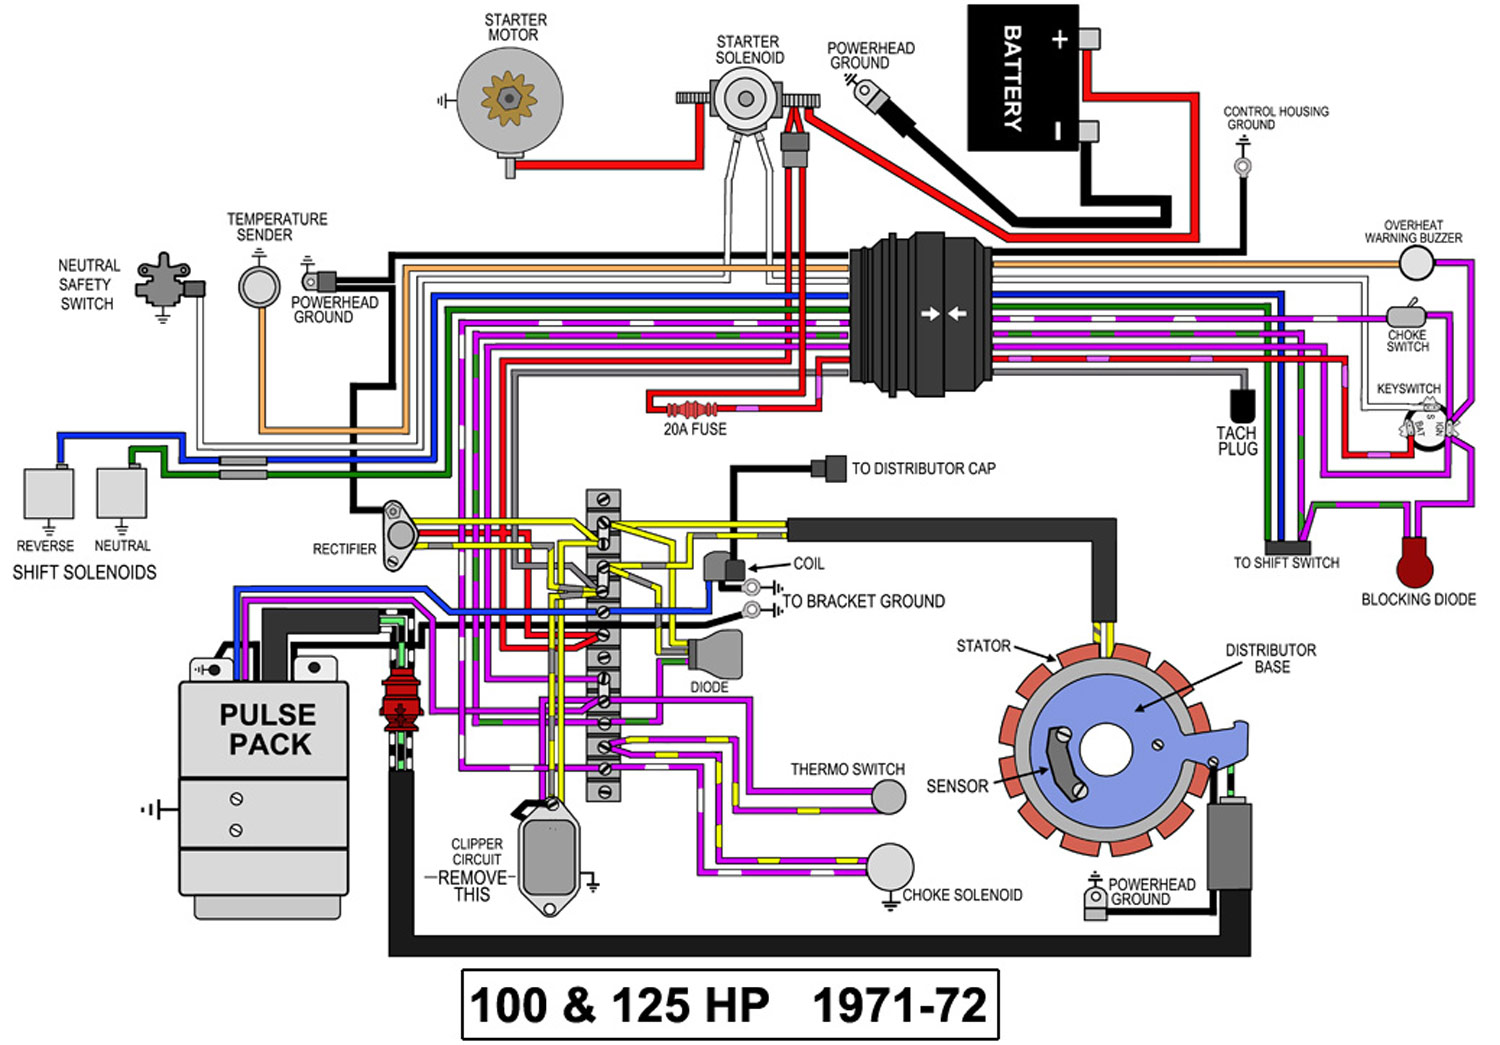 marine solenoid switch wiring diagram wiring library rh 97 m33labs com